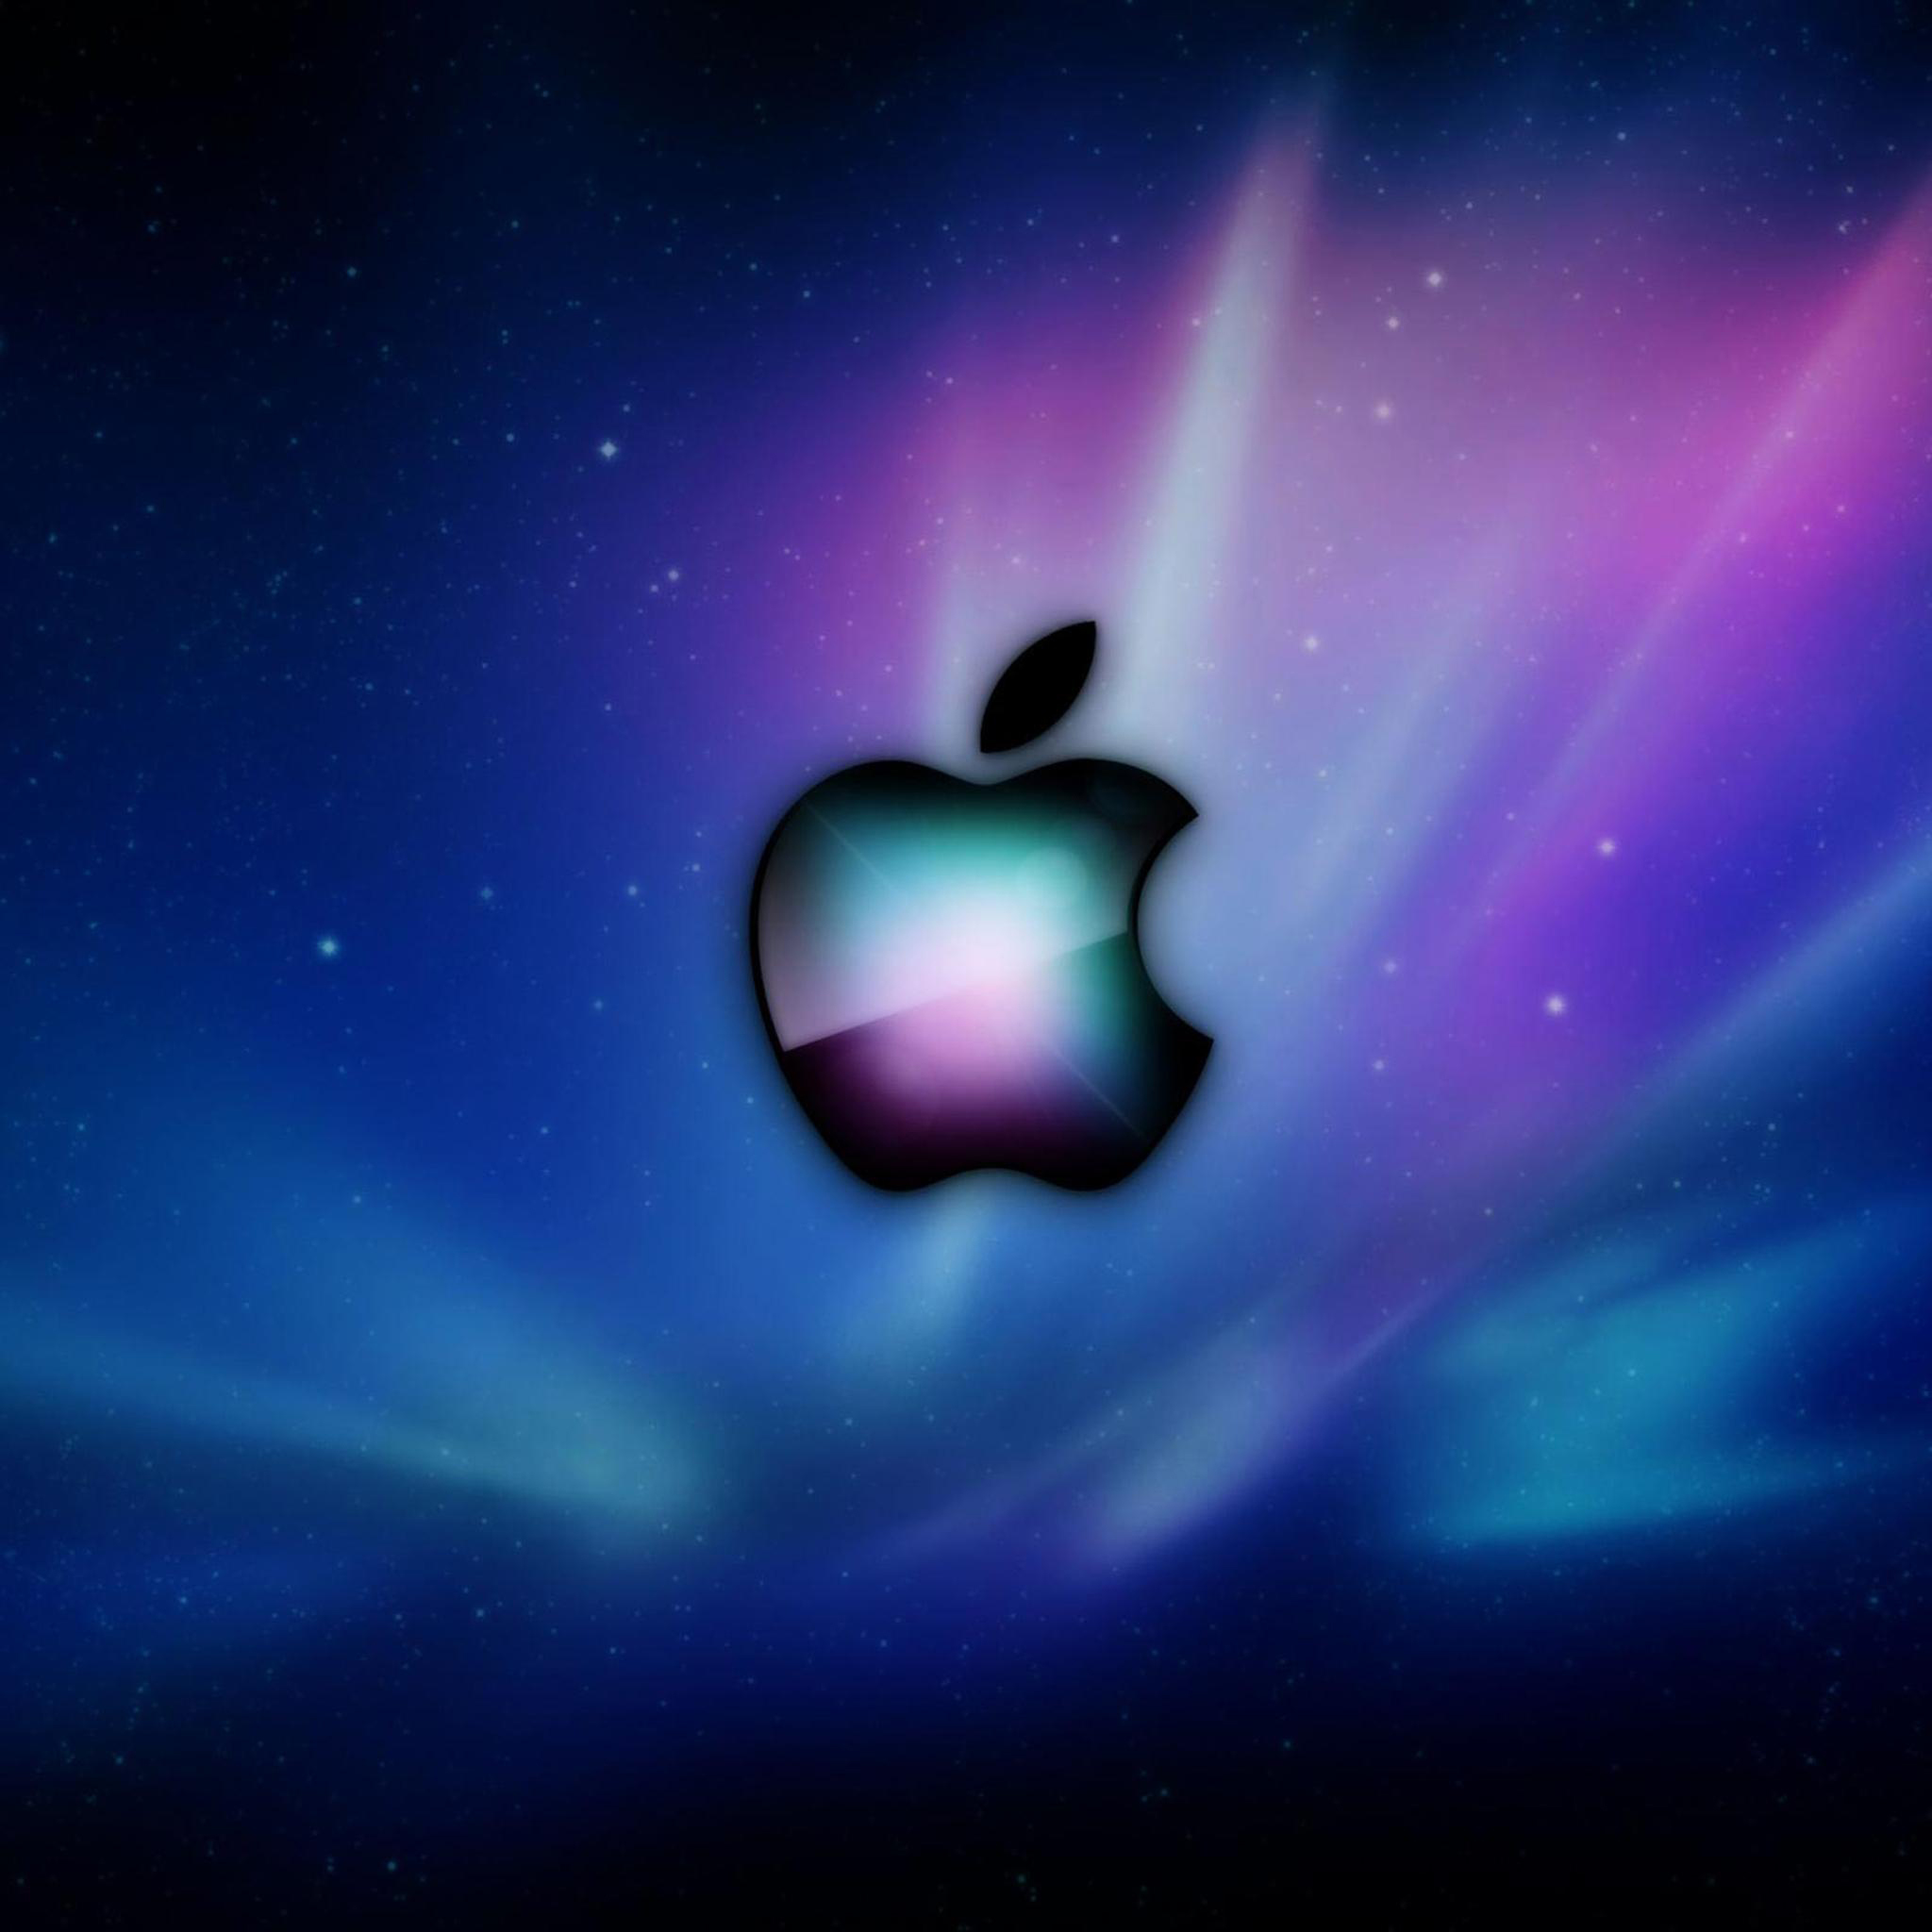 AppleColorful-Aurora-3Wallpapers-iPad-Retina